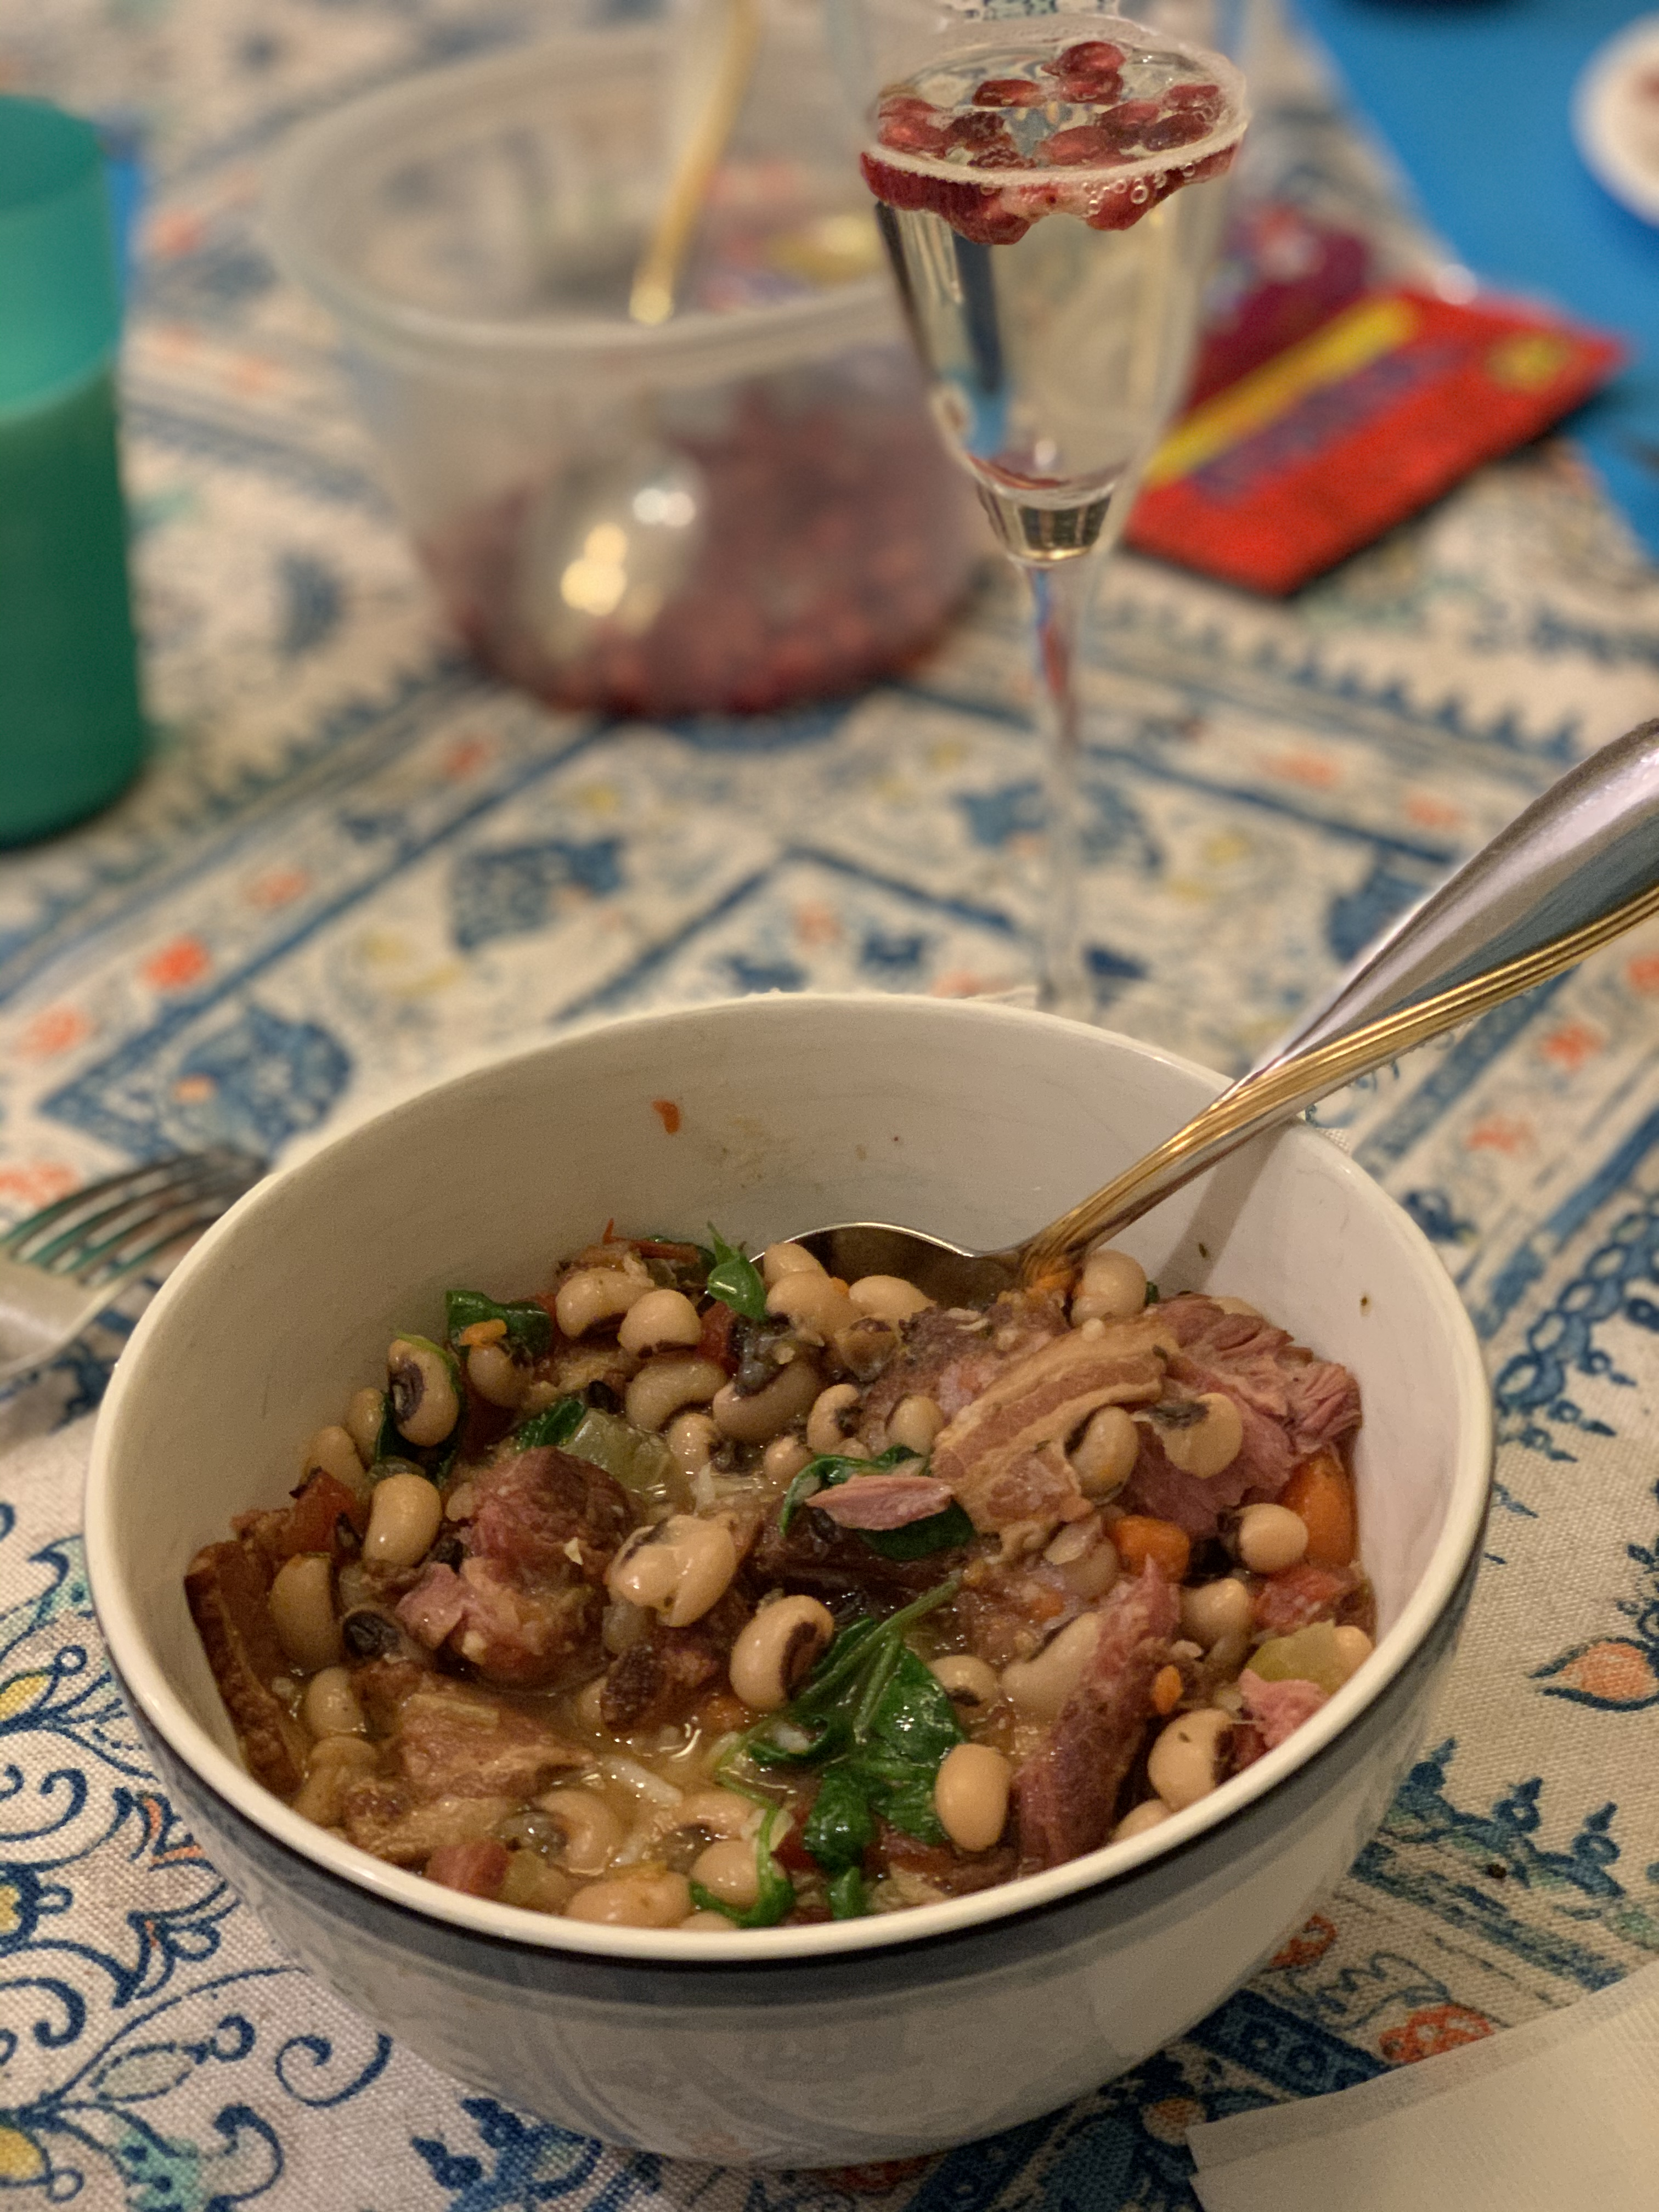 Black-Eyed Peas with Pork and Greens